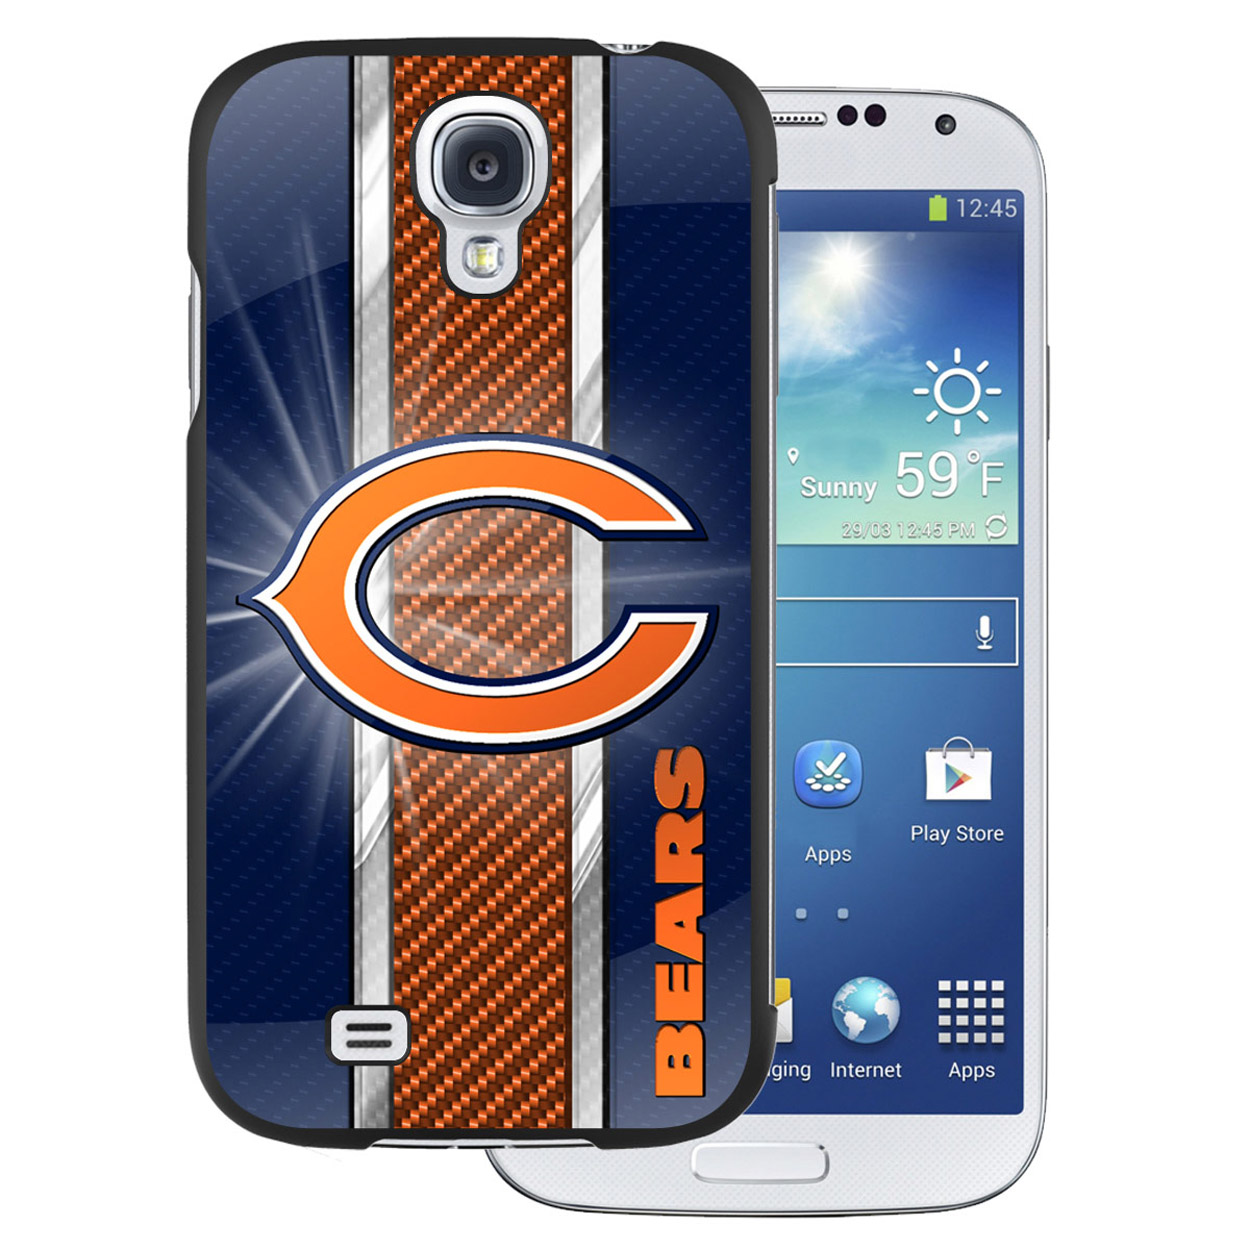 NFL Samsung Galaxy 4 Case - Chicago Bears